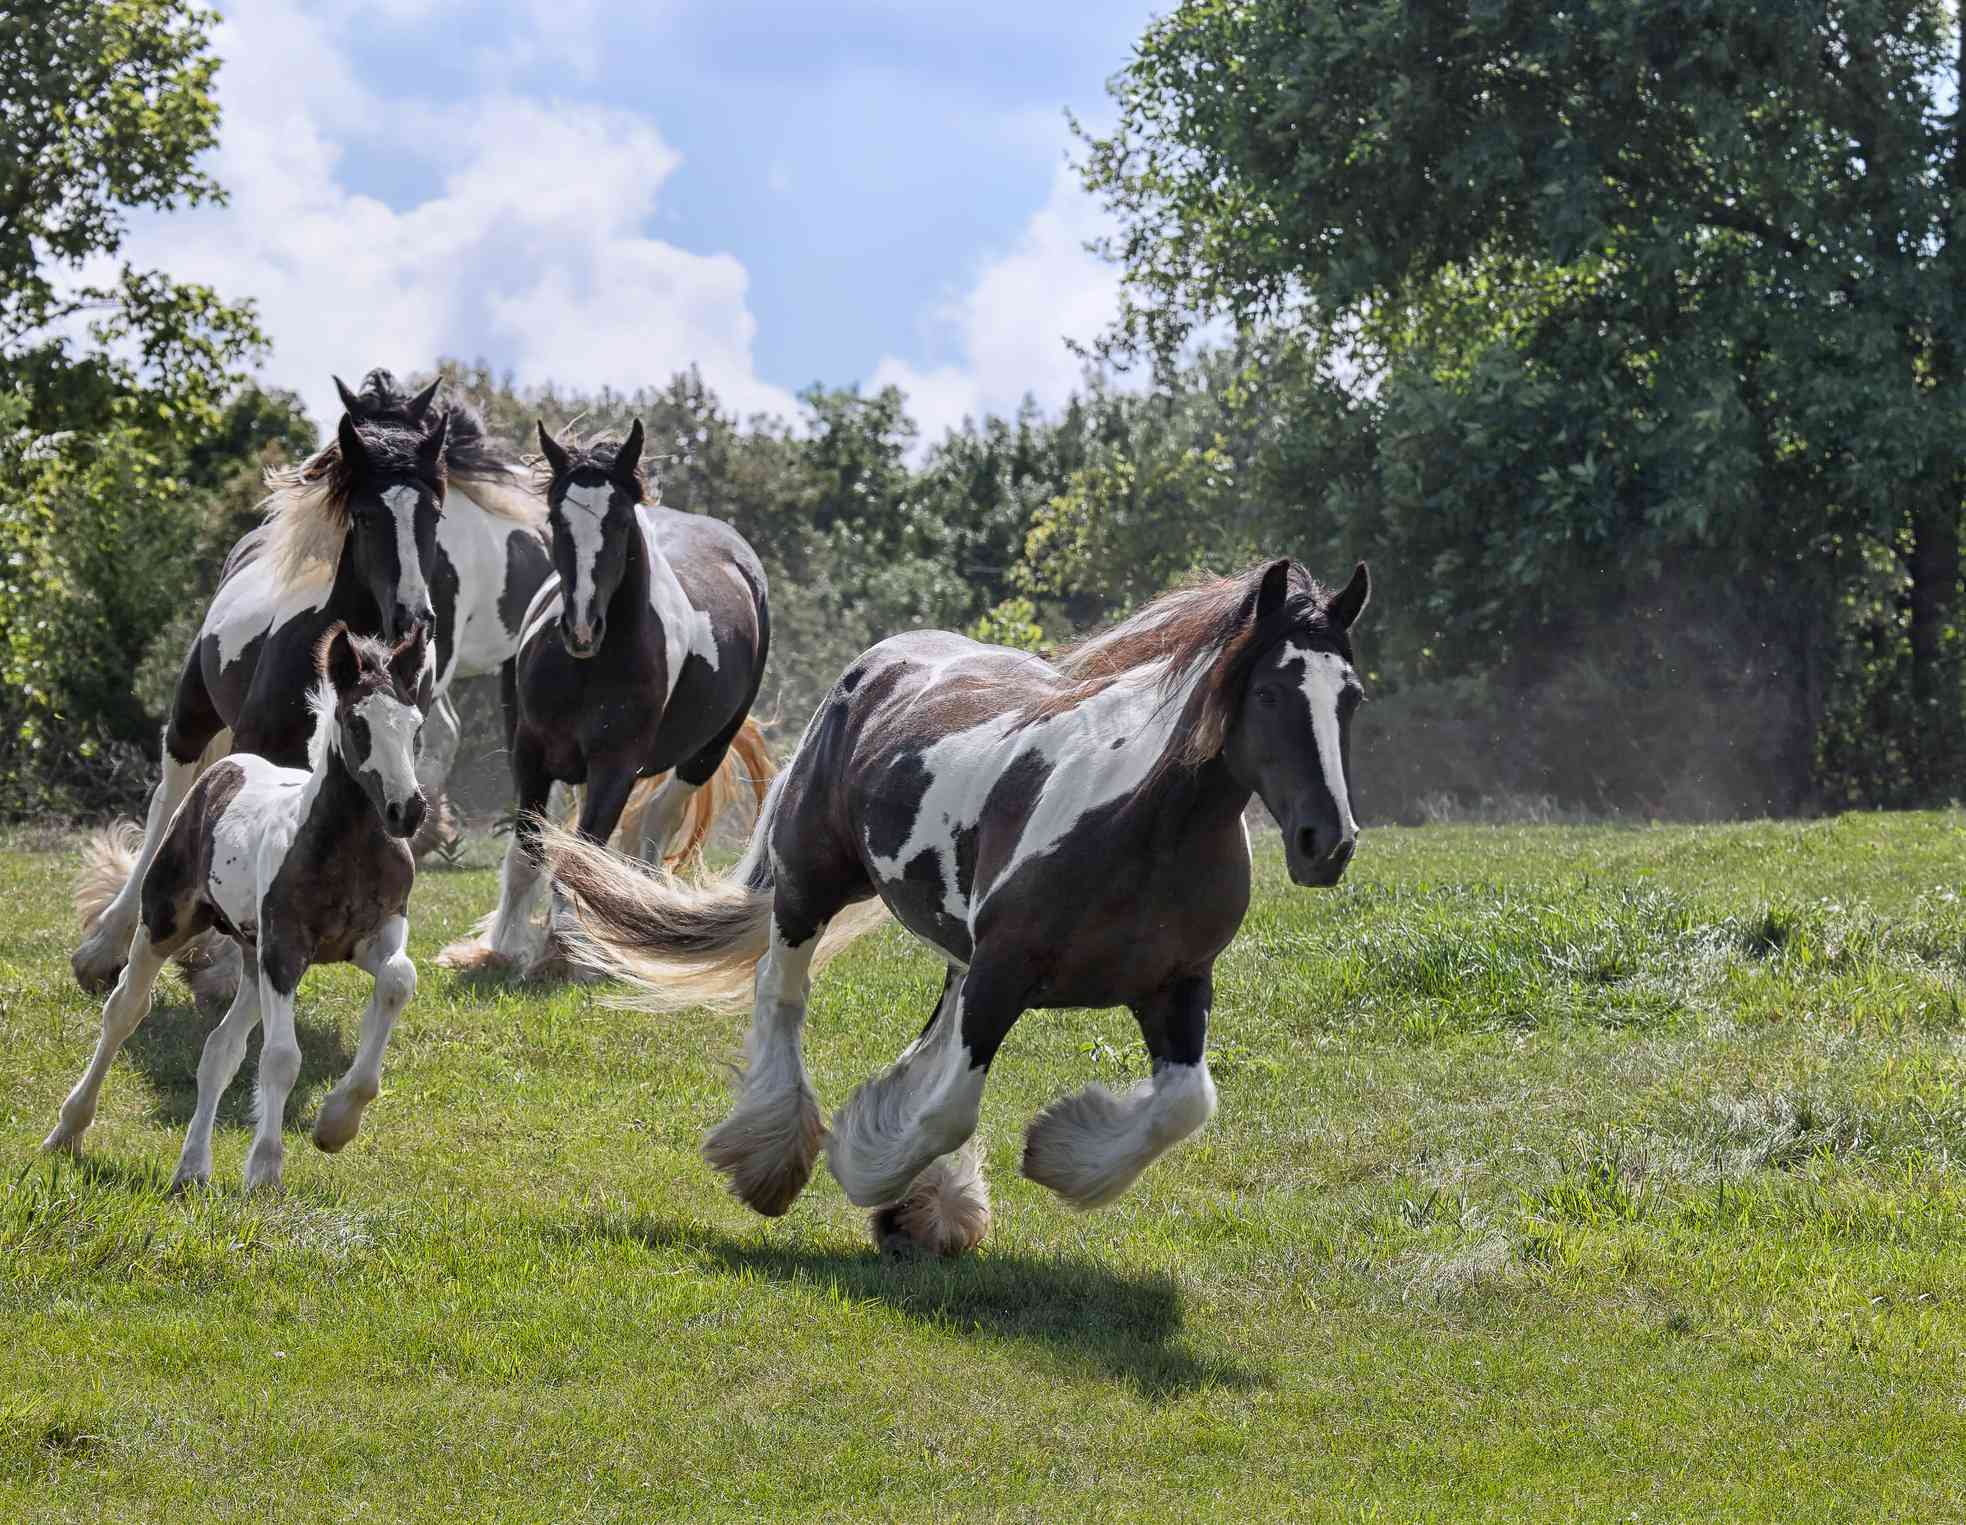 A band of brown and white horses runs wildly in a grassy field